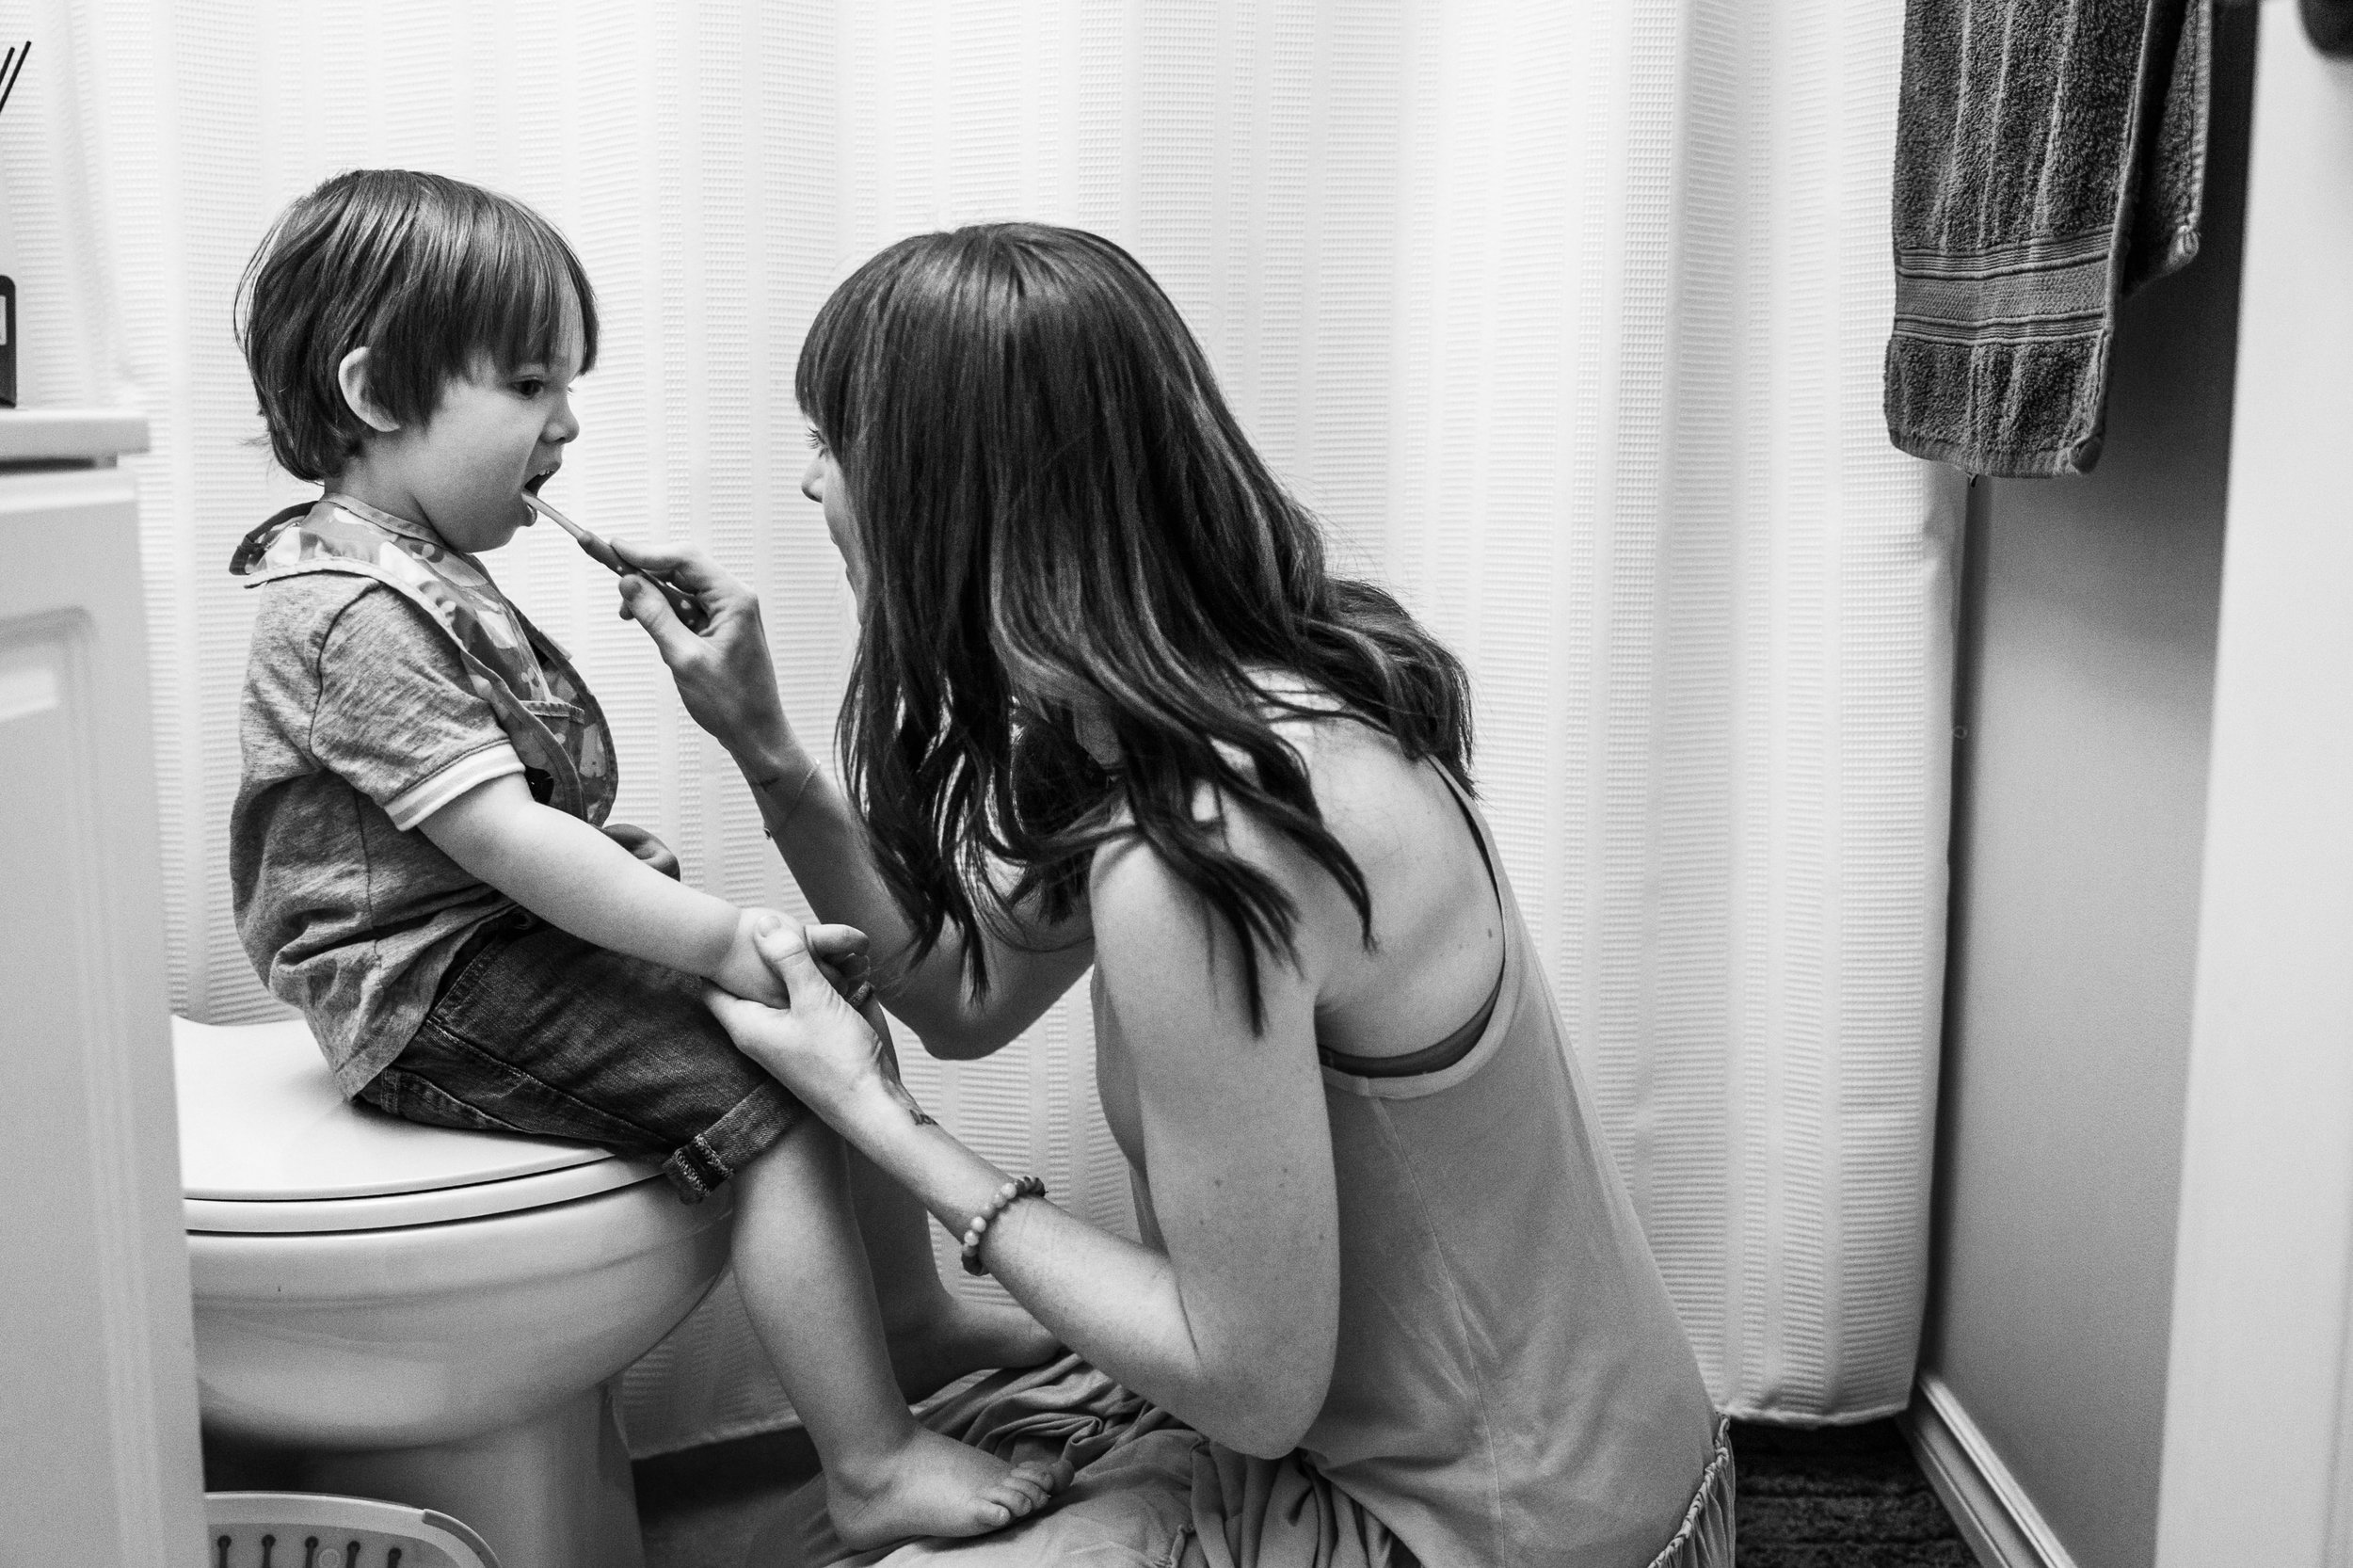 mom brushing young toddler's teeth on toilet in bathroom